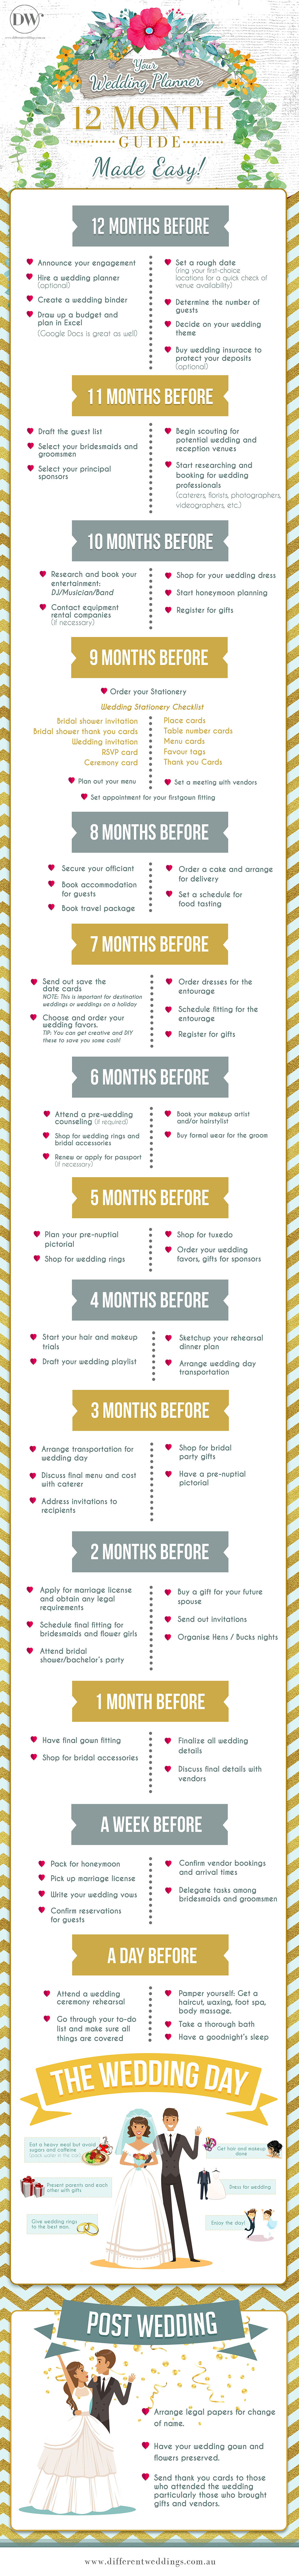 From 'Will You' Till 'I Do': 12-Month Wedding Planner - Infographic